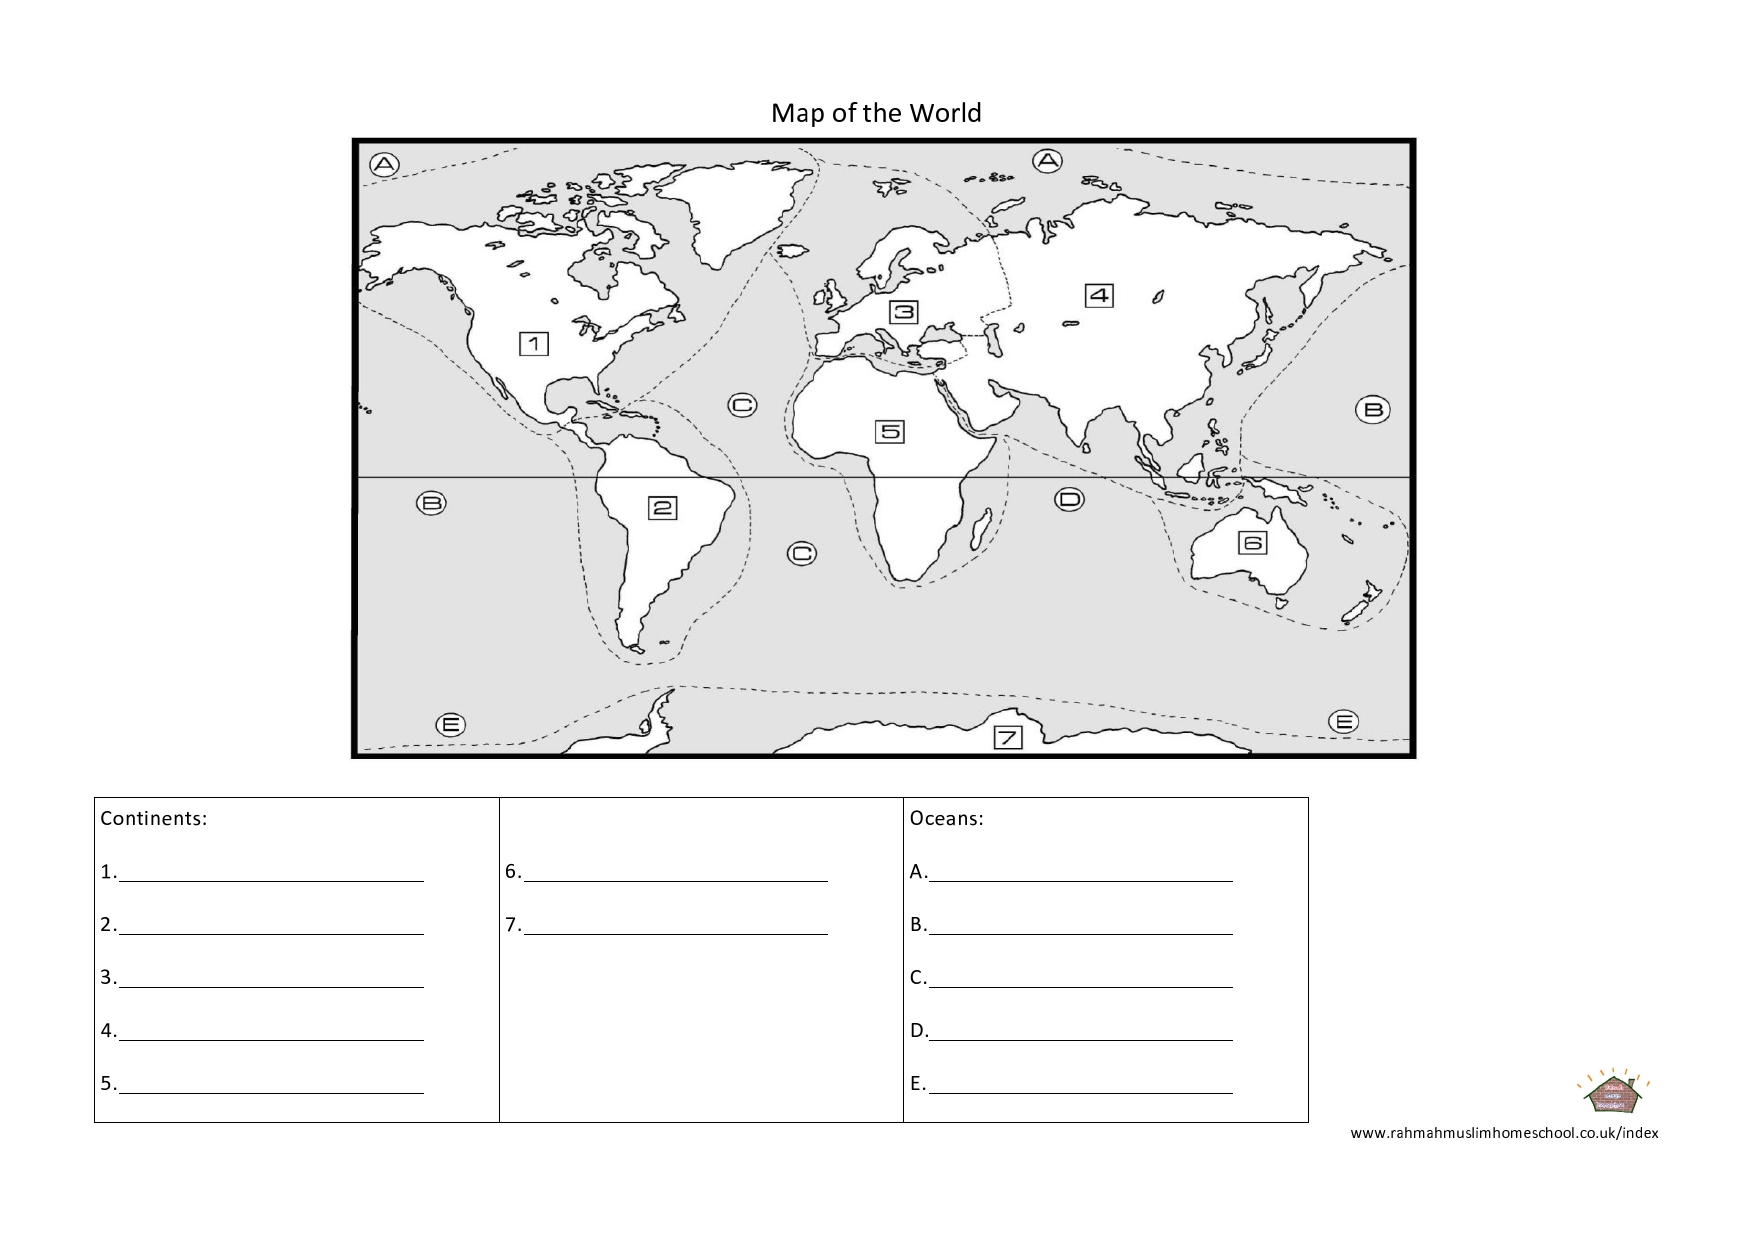 Printables Continents And Oceans Of The World Worksheet geography continents and oceans worksheet the resources of download worksheet